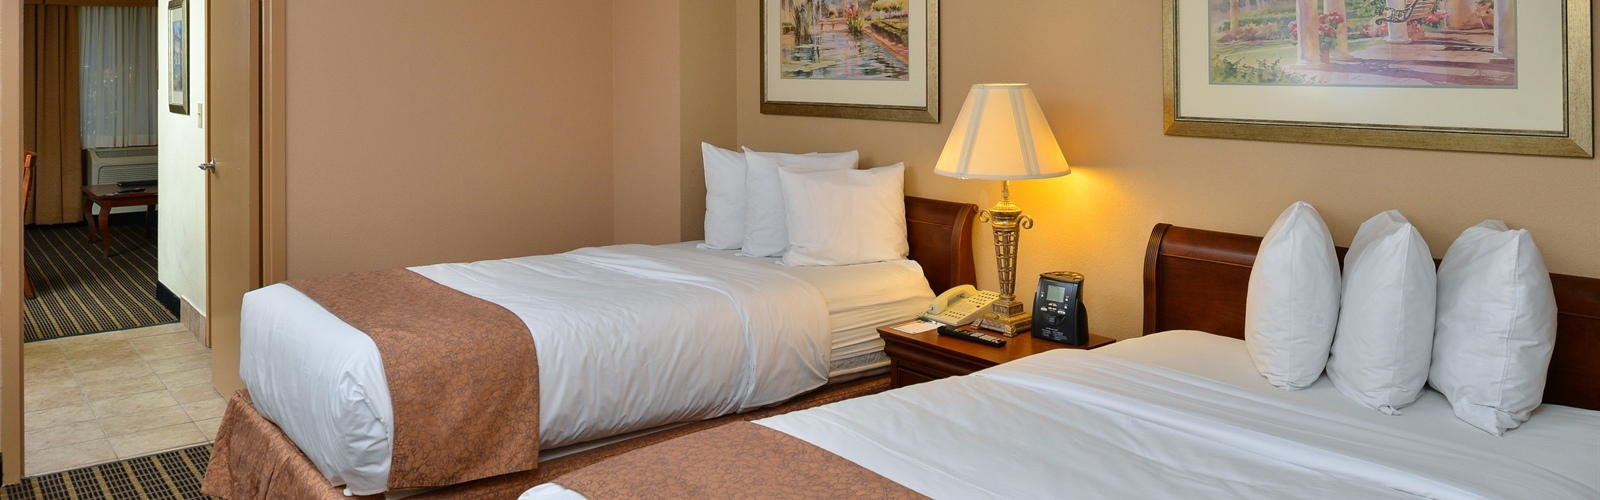 Orlando Hotel 2 Bedroom Suites Official Site Orlando Two Bedroom Suites Near Walt Disney World